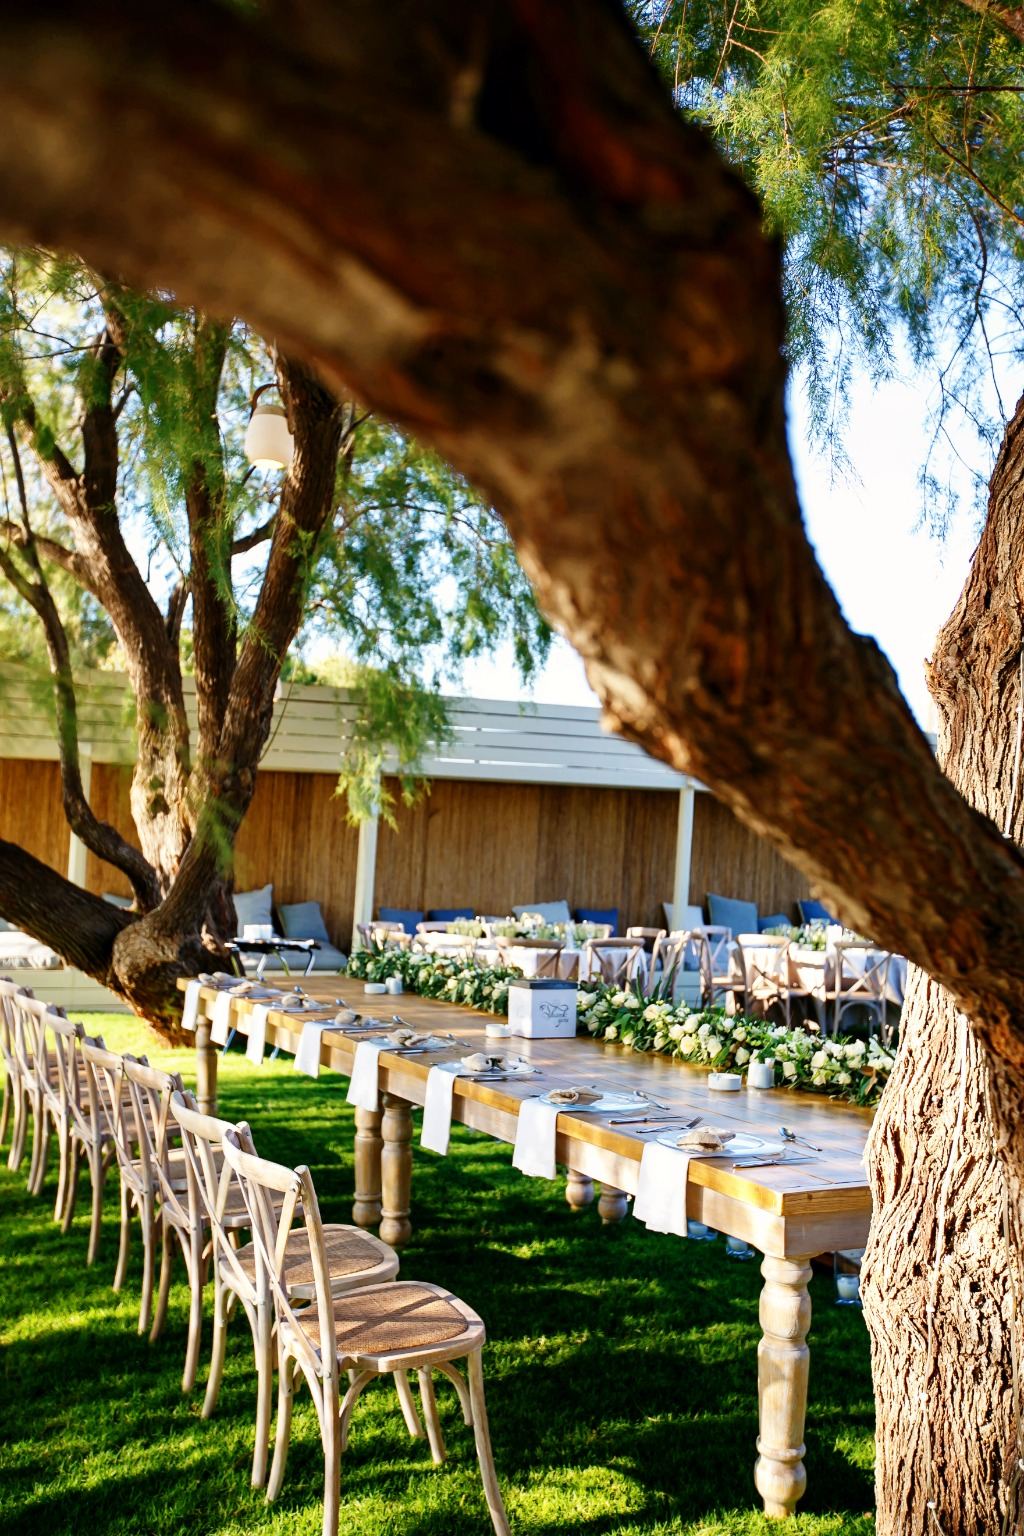 Organic wedding in Greece with lovely floral garlands and an outstanding setting in a garden venue.